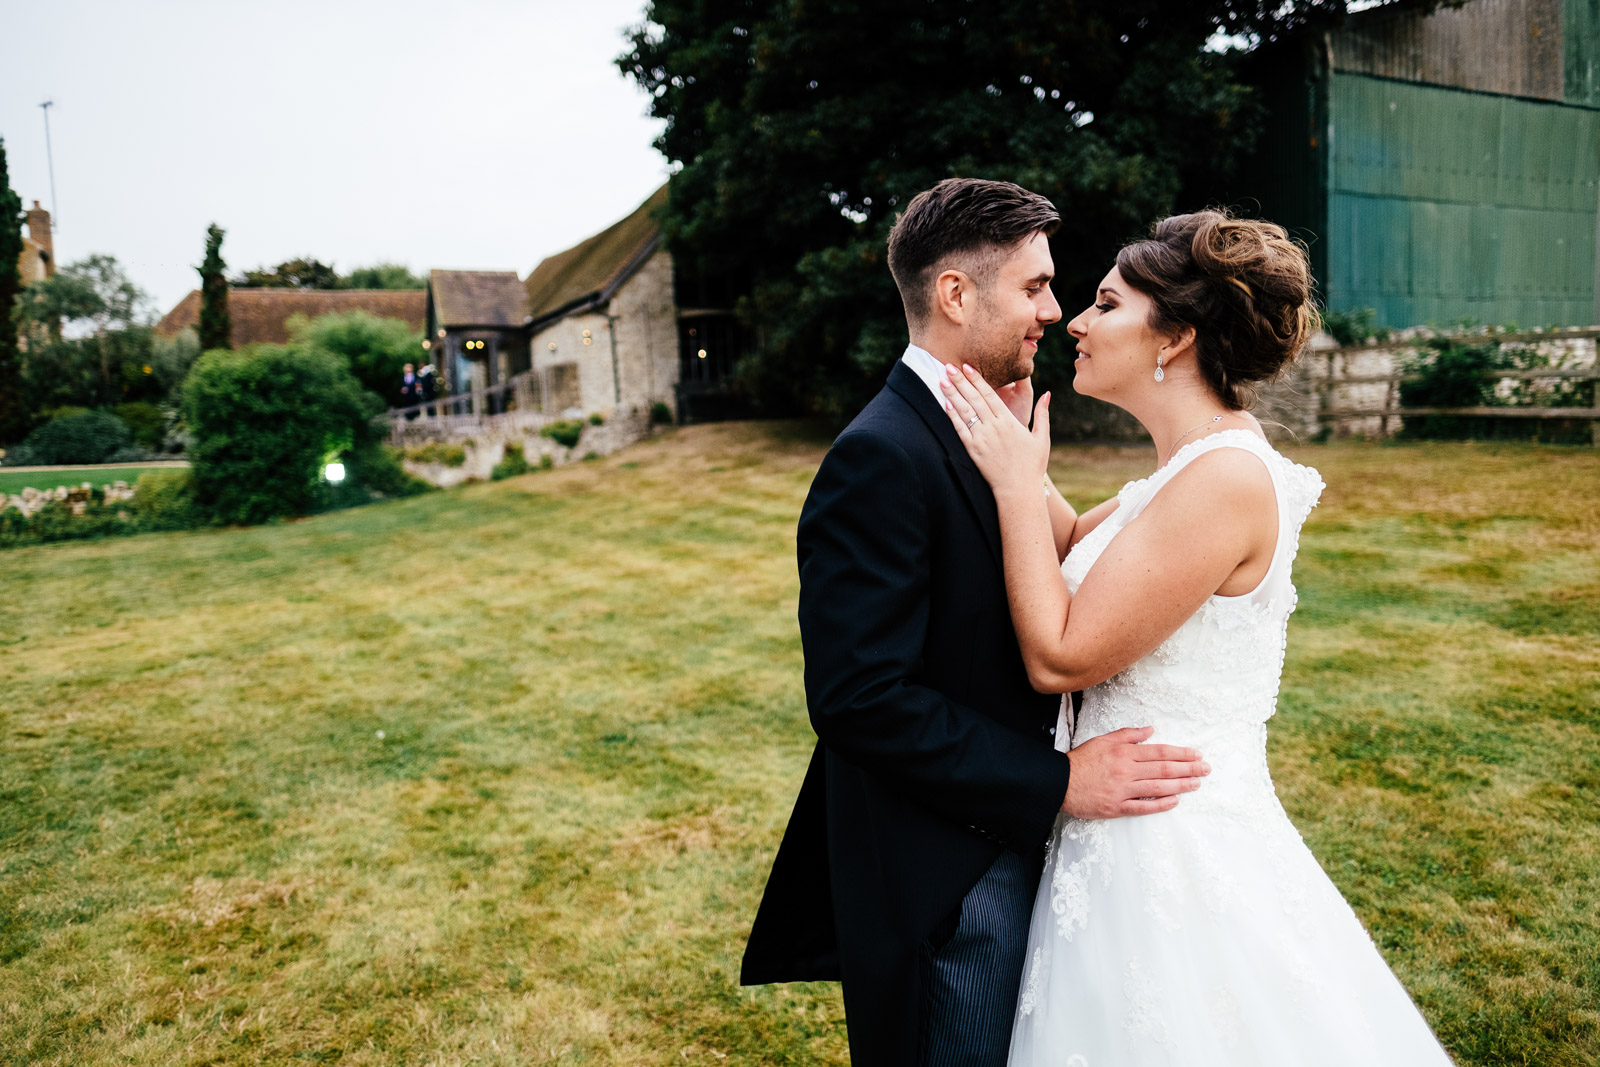 A bride and groom embrace outside Notley Tythe Barn, Buckinghamshire. Photo by Sam and Steve Photography